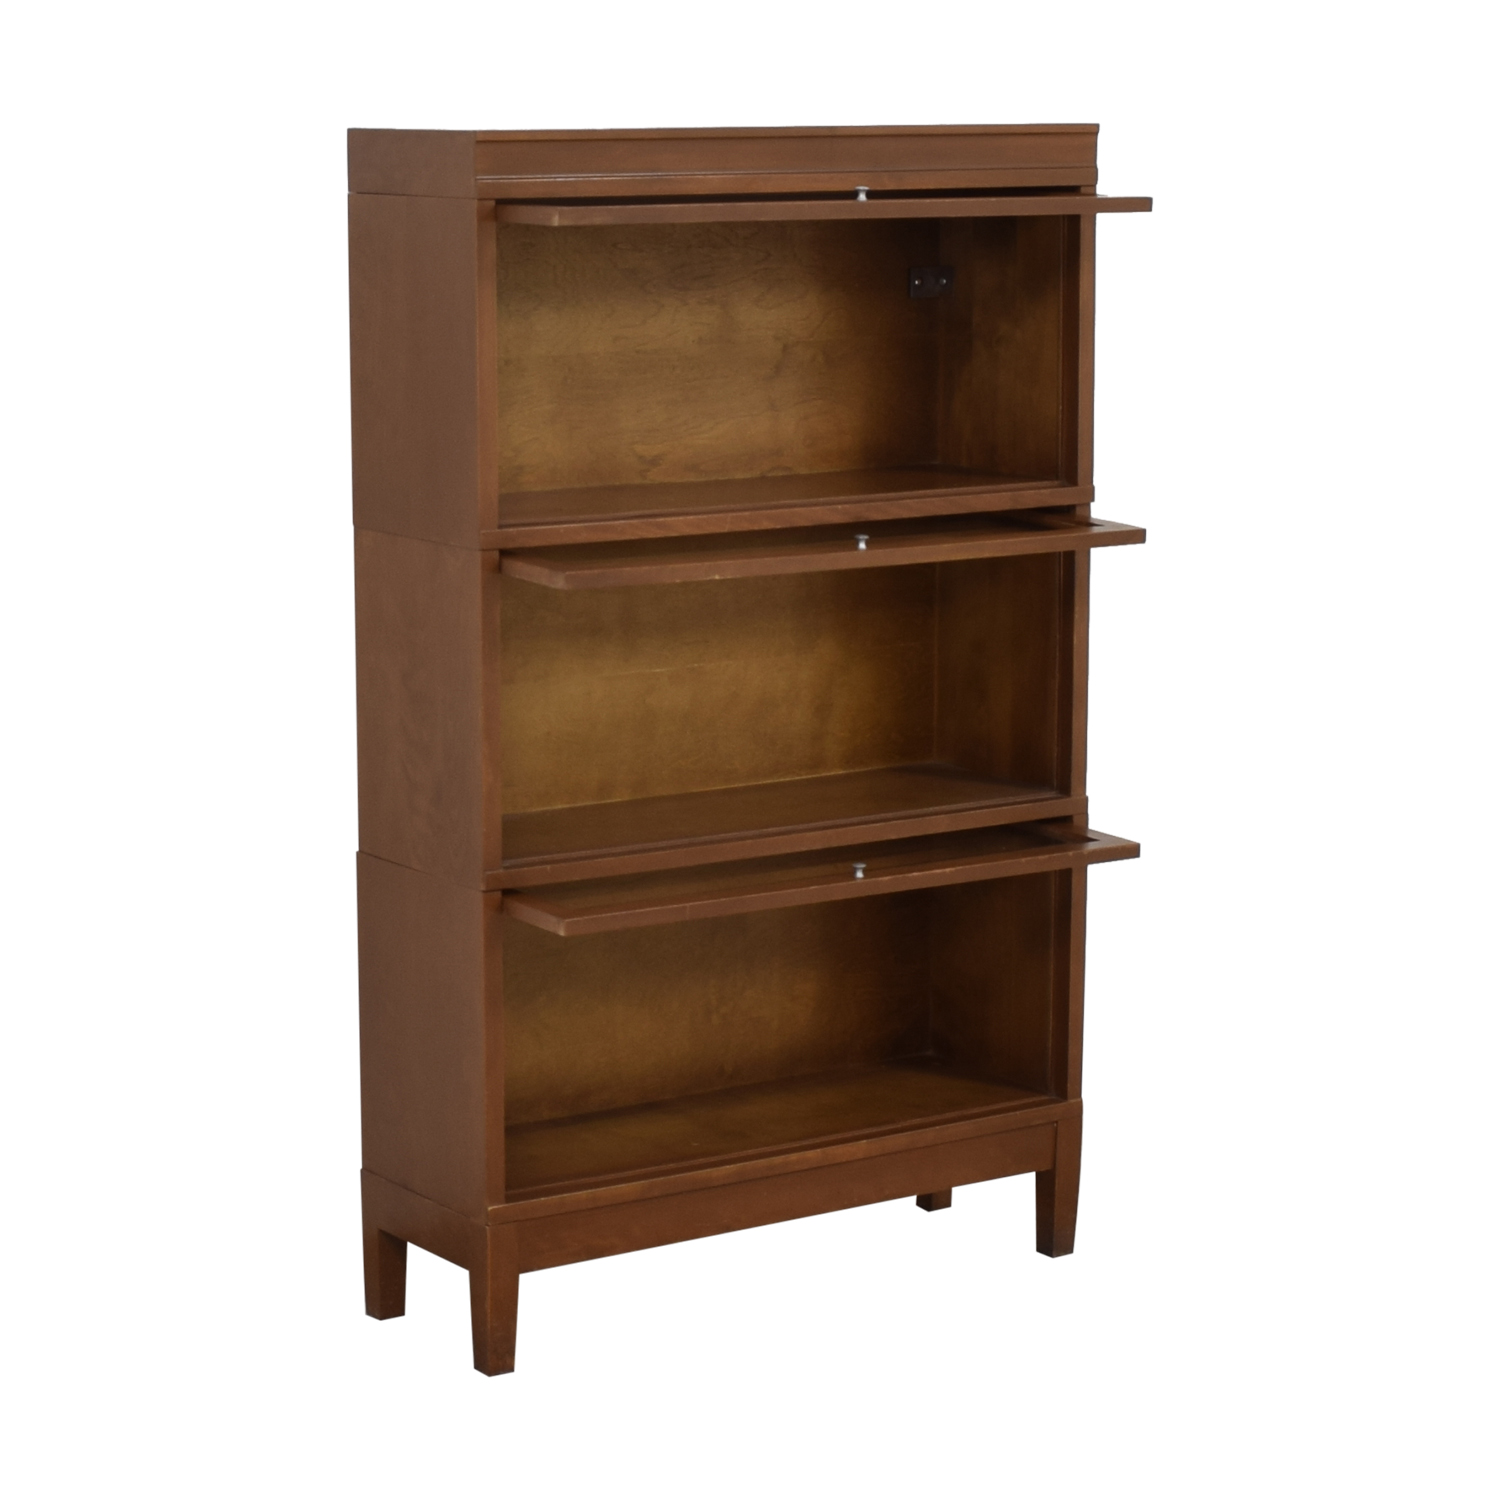 Hale Hale Sectional Barrister Three Stack Bookcase